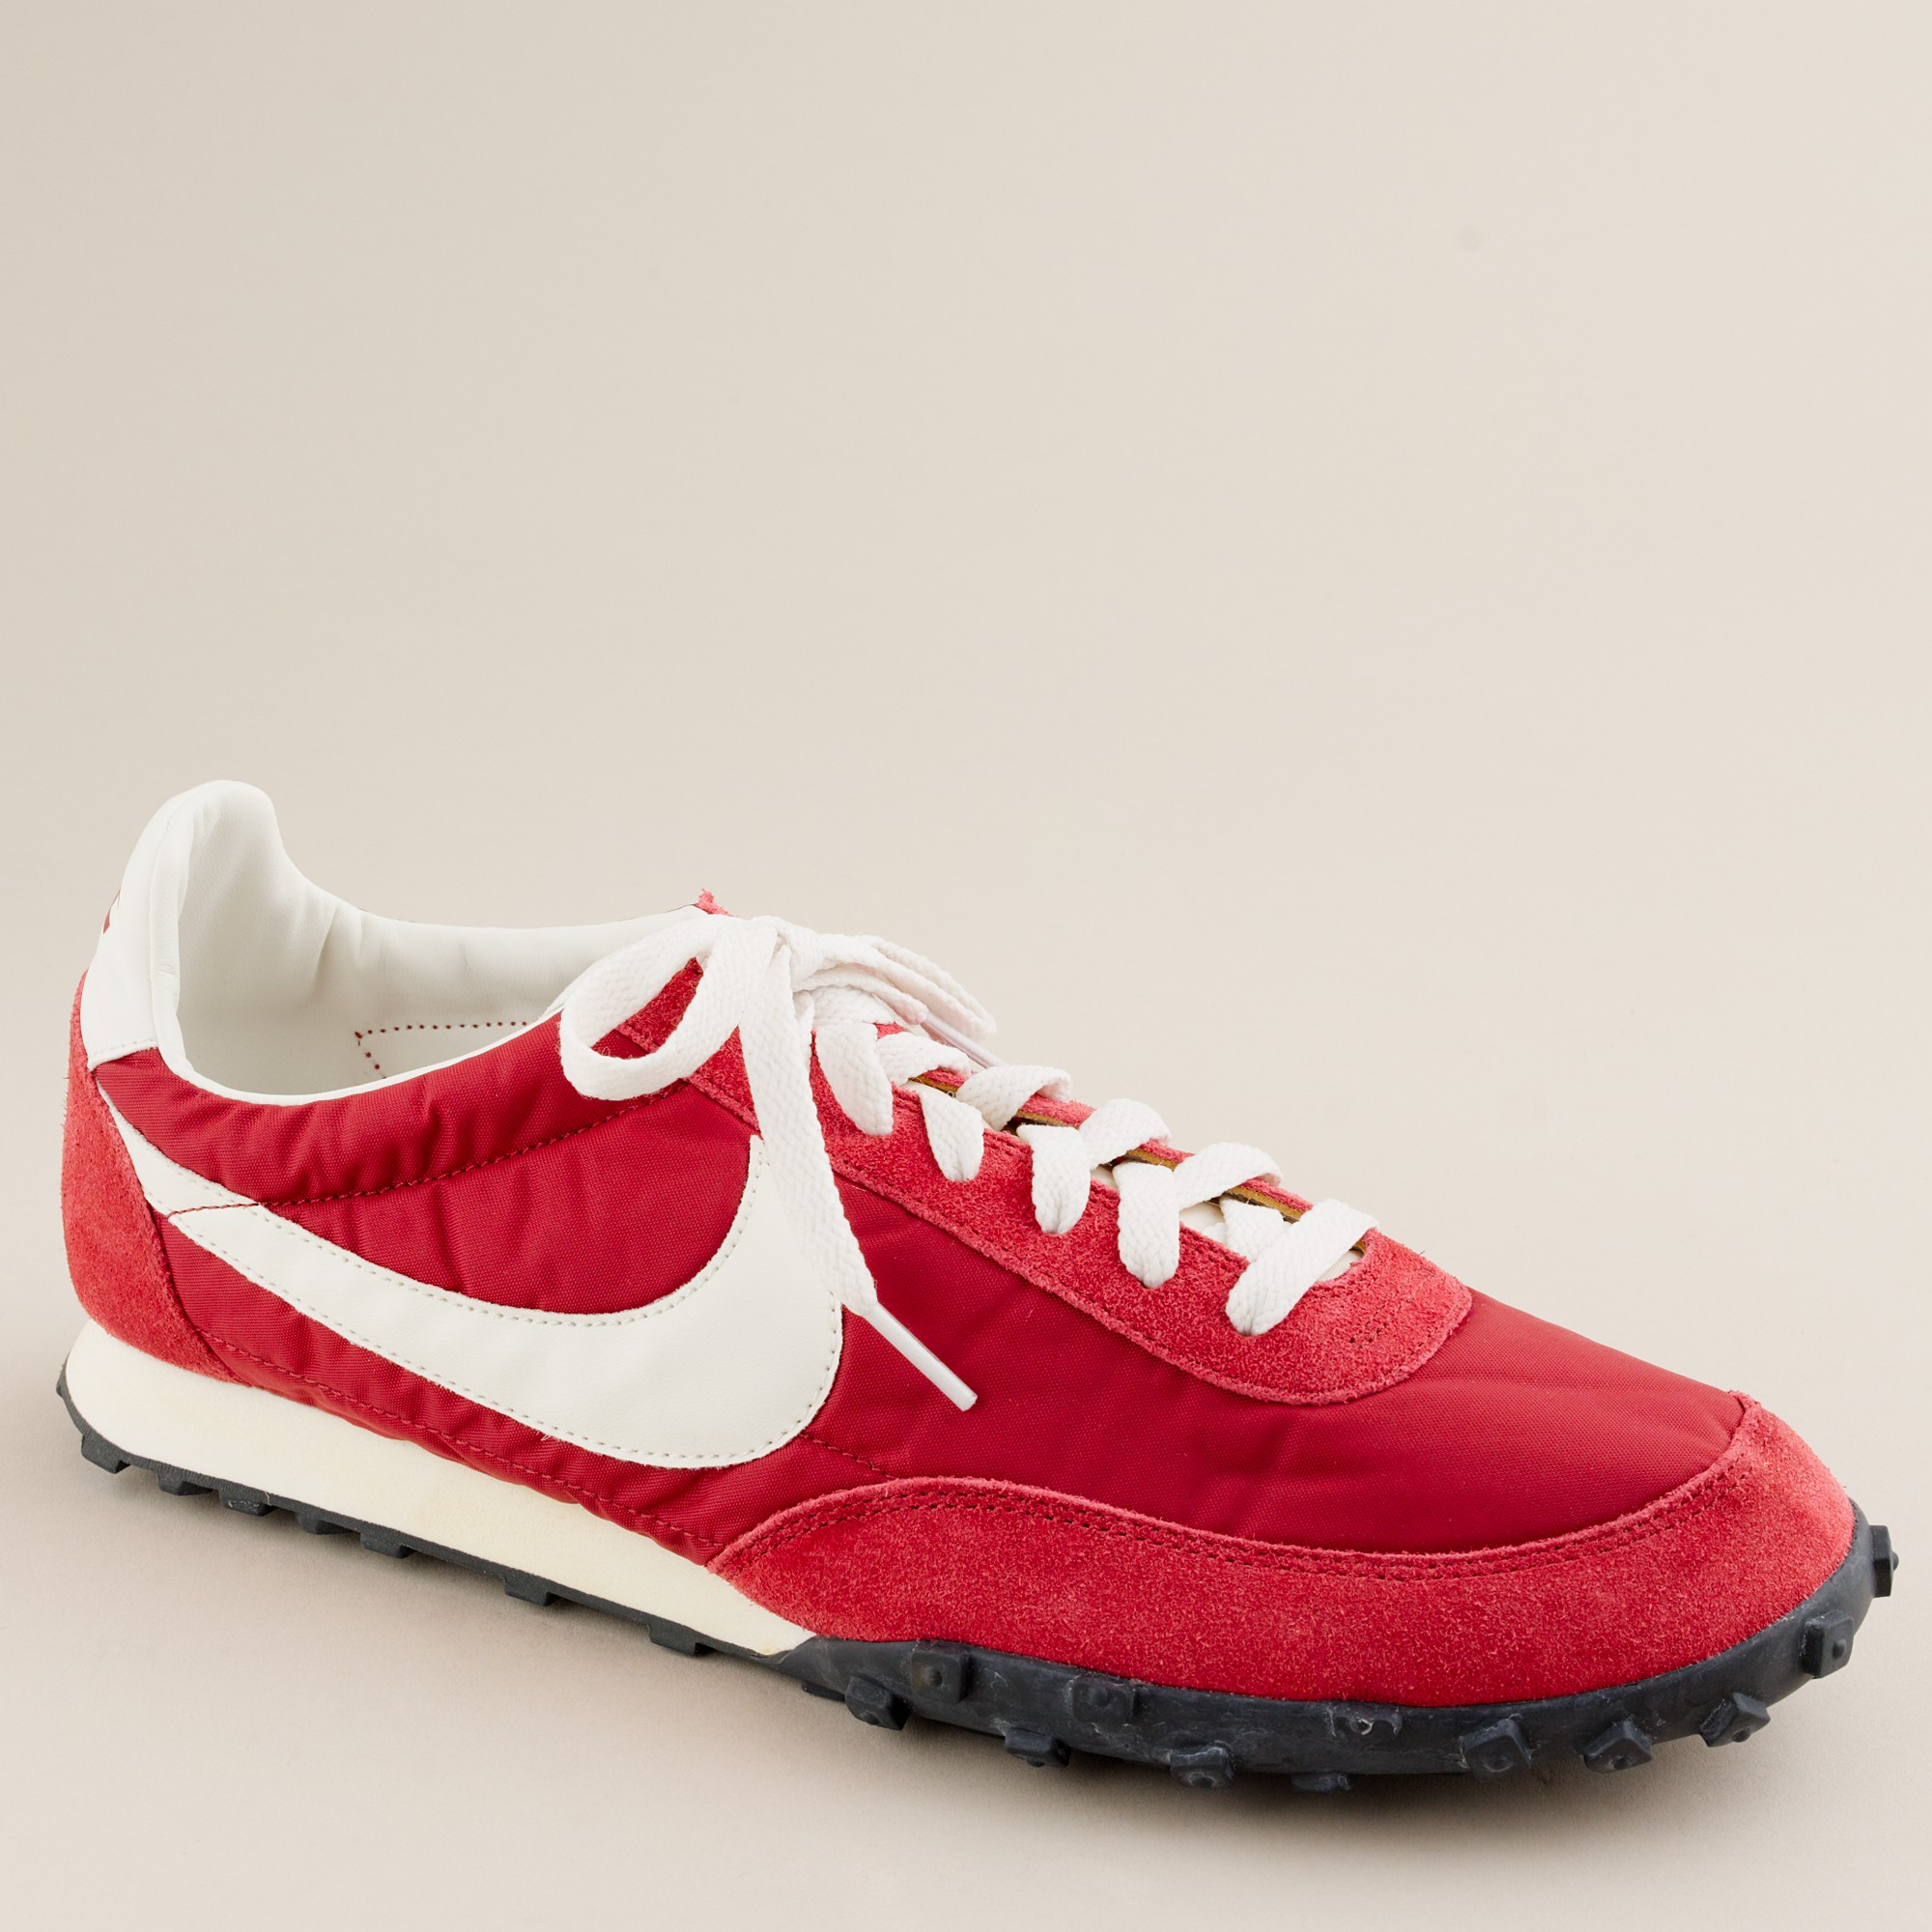 ... australia lyst j.crew nike vintage collection waffle racer sneakers in  red bbe47 b65b9 47321e0b0